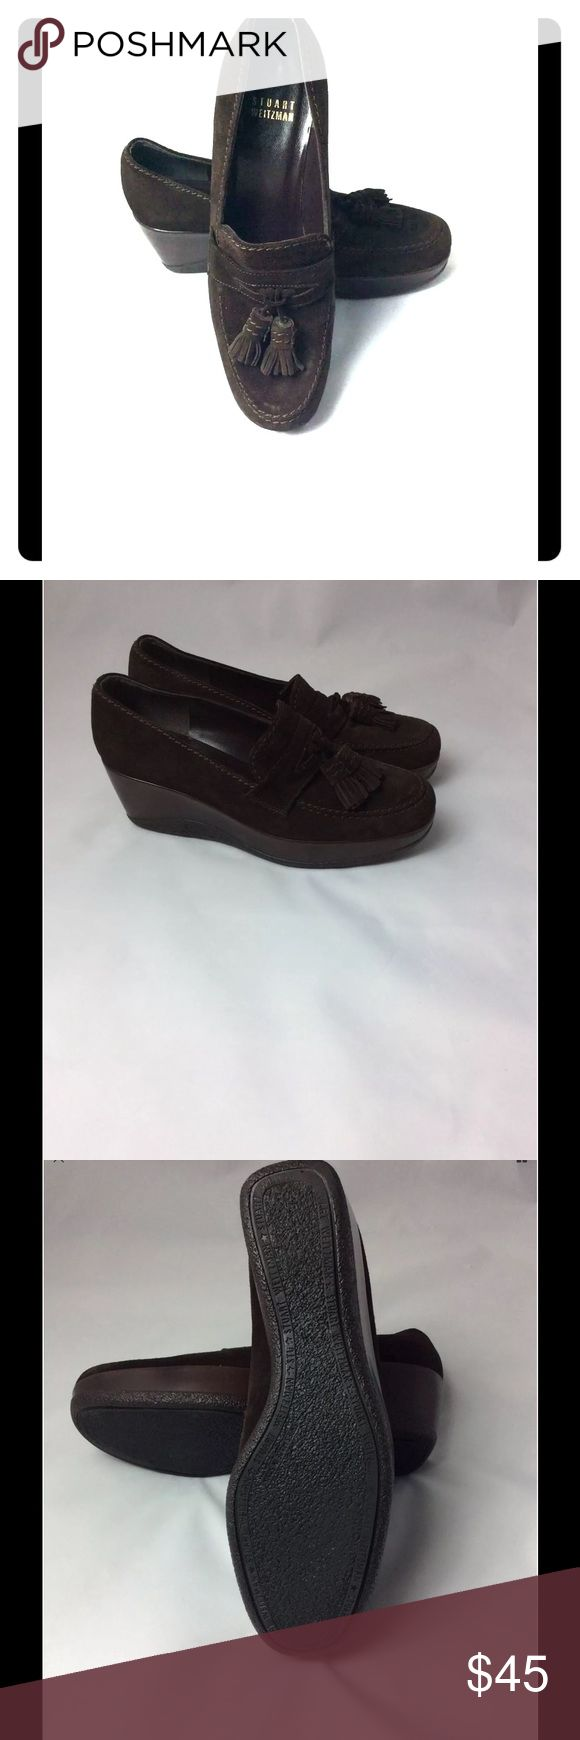 Stuart Weitzman Wedge Loafers With Tassel Brown Pre-loved Authentic Stuart Weitzman wedge loafers. Shoes are in excellent condition with signs of wear on the bottom of shoe. See photos. Material is suede. Size is 7 USA Stuart Weitzman Shoes Wedges